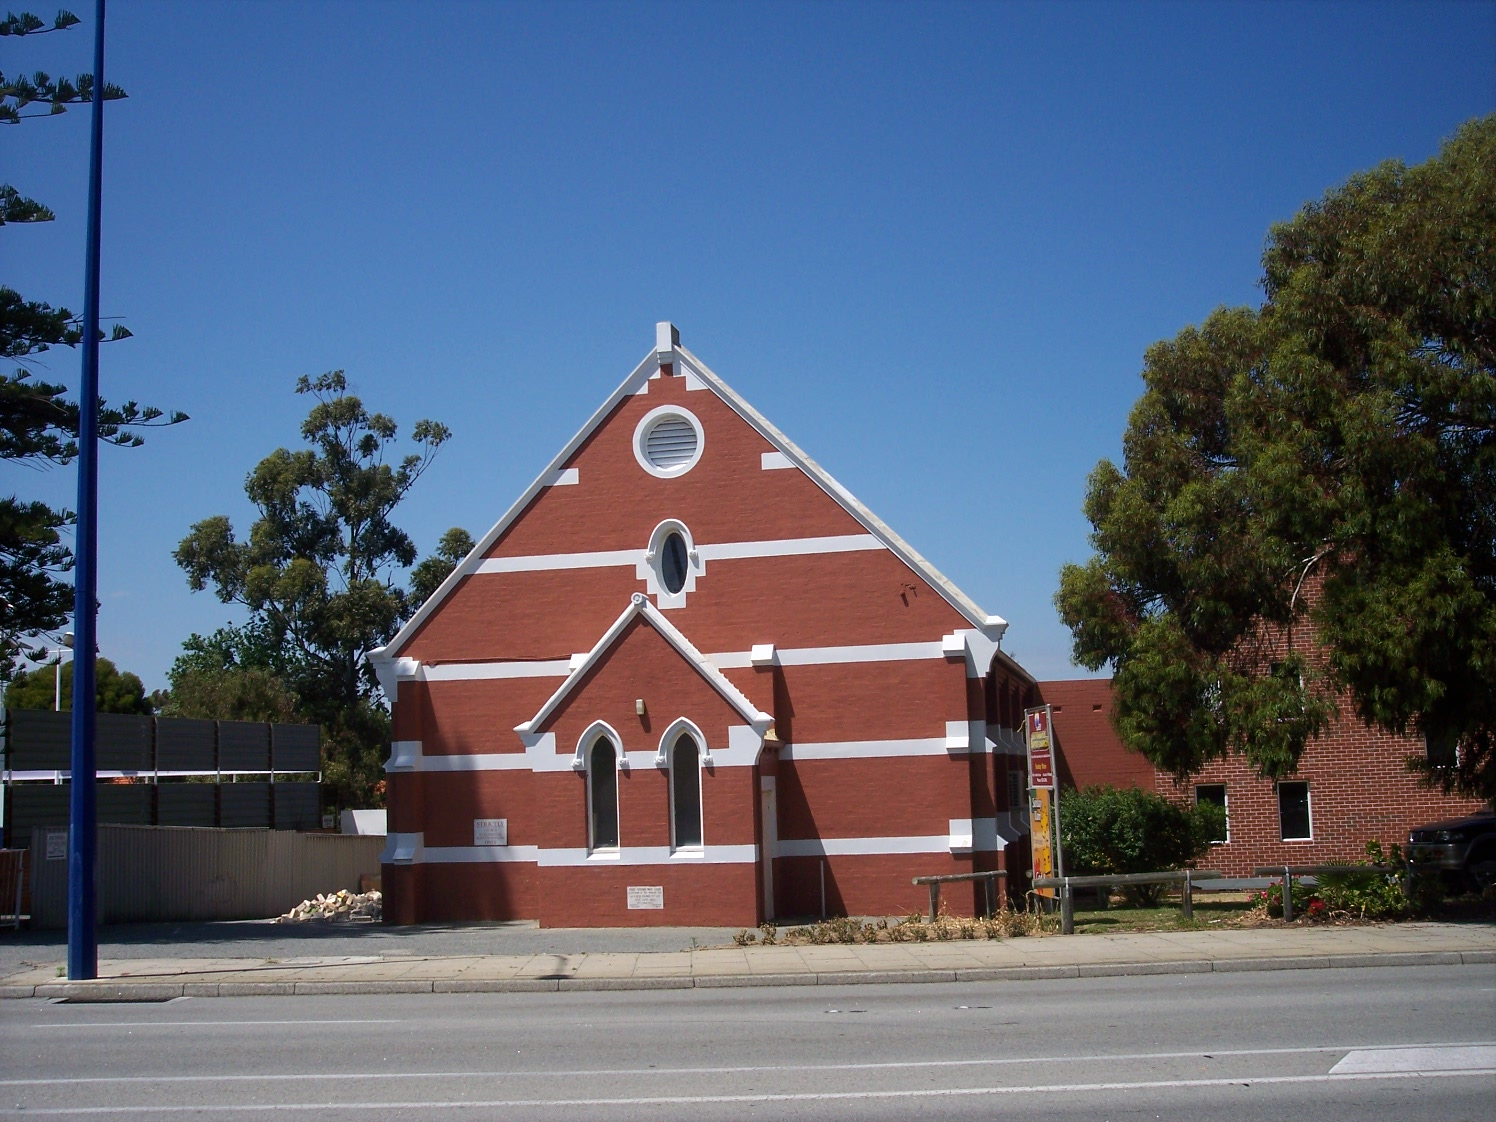 31-10-06 View S 229 Canning Highway.jpg